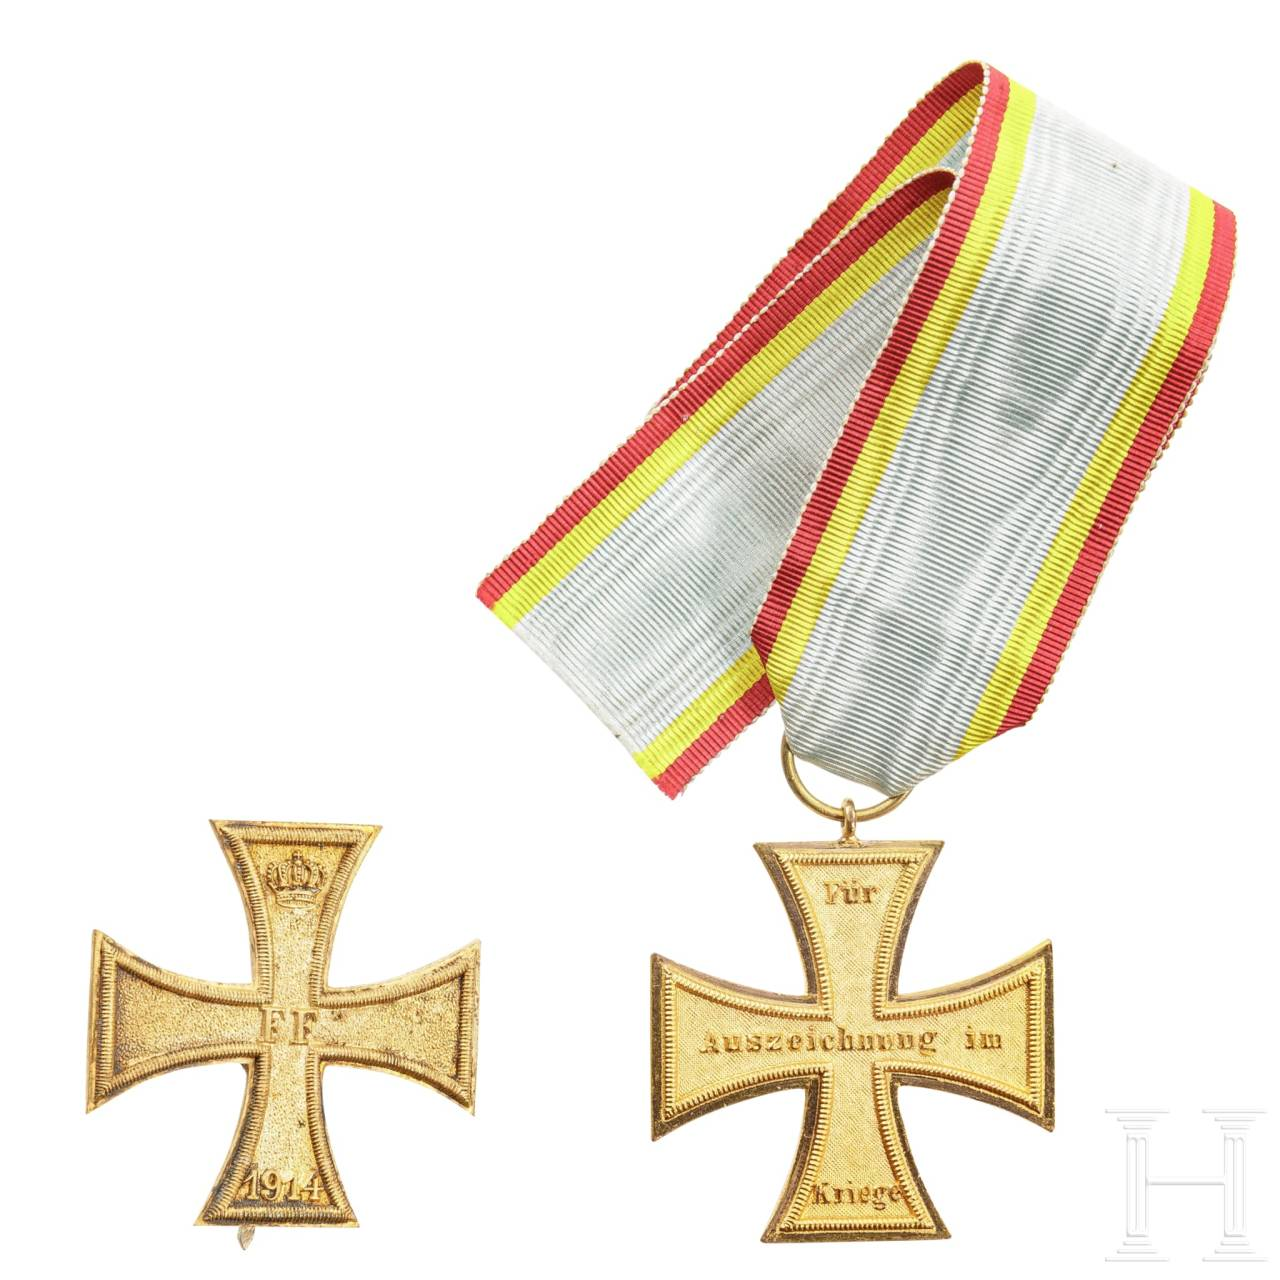 Mecklenburg-Schwerin - a military merit cross 1st and 2nd class, 1914